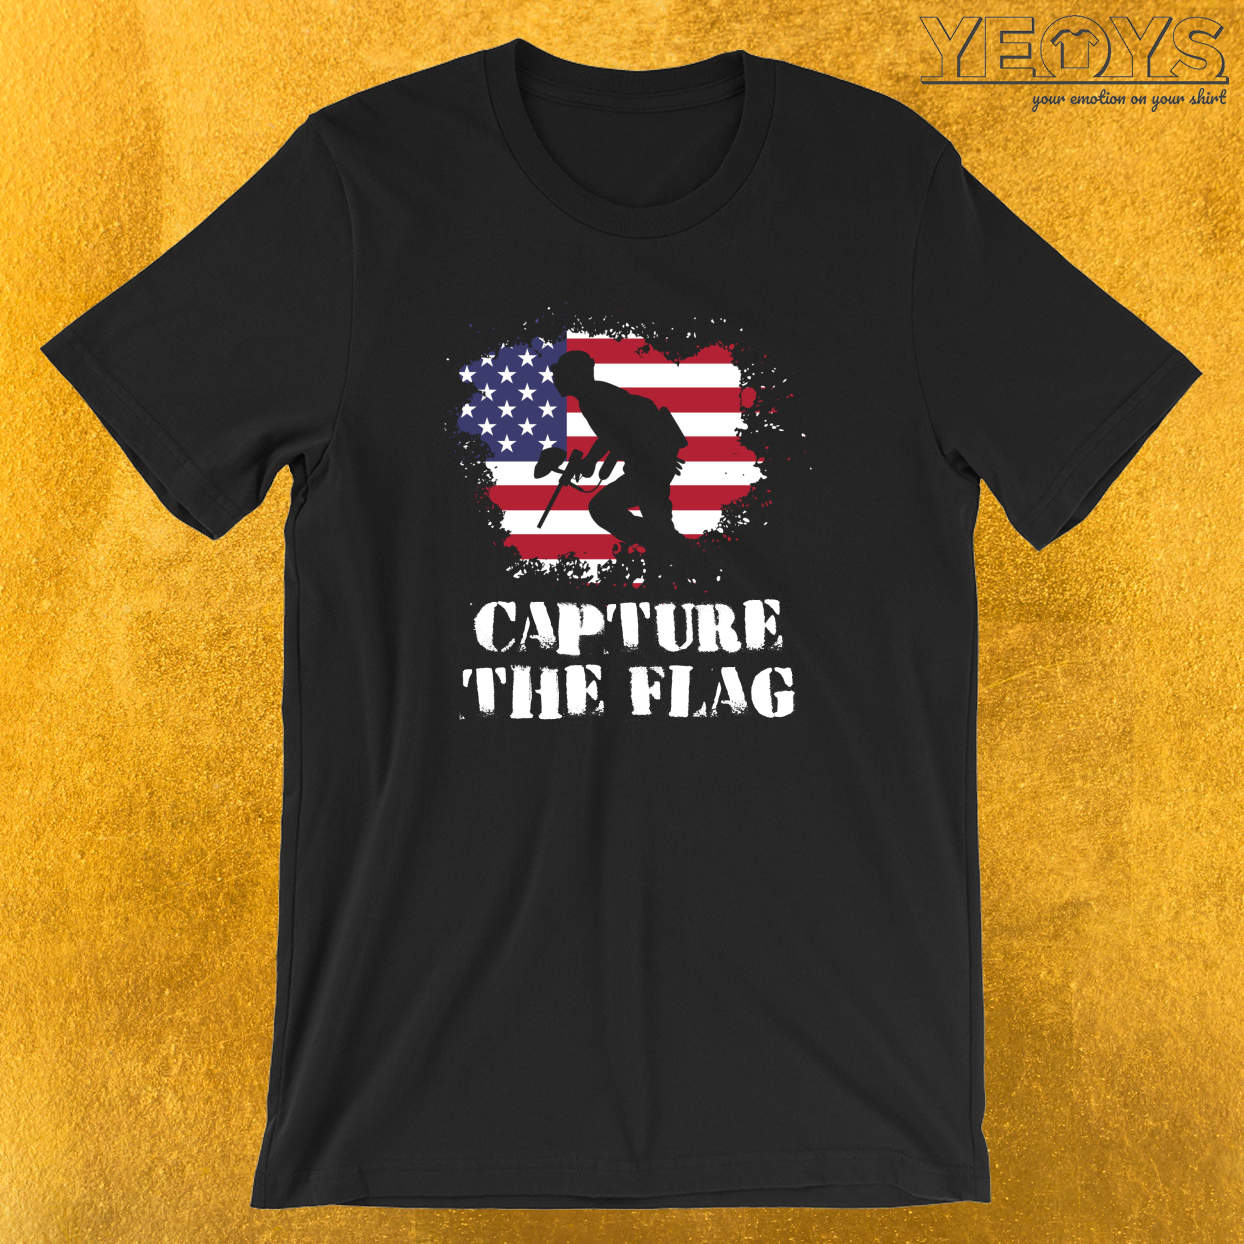 Capture The Flag T-Shirt